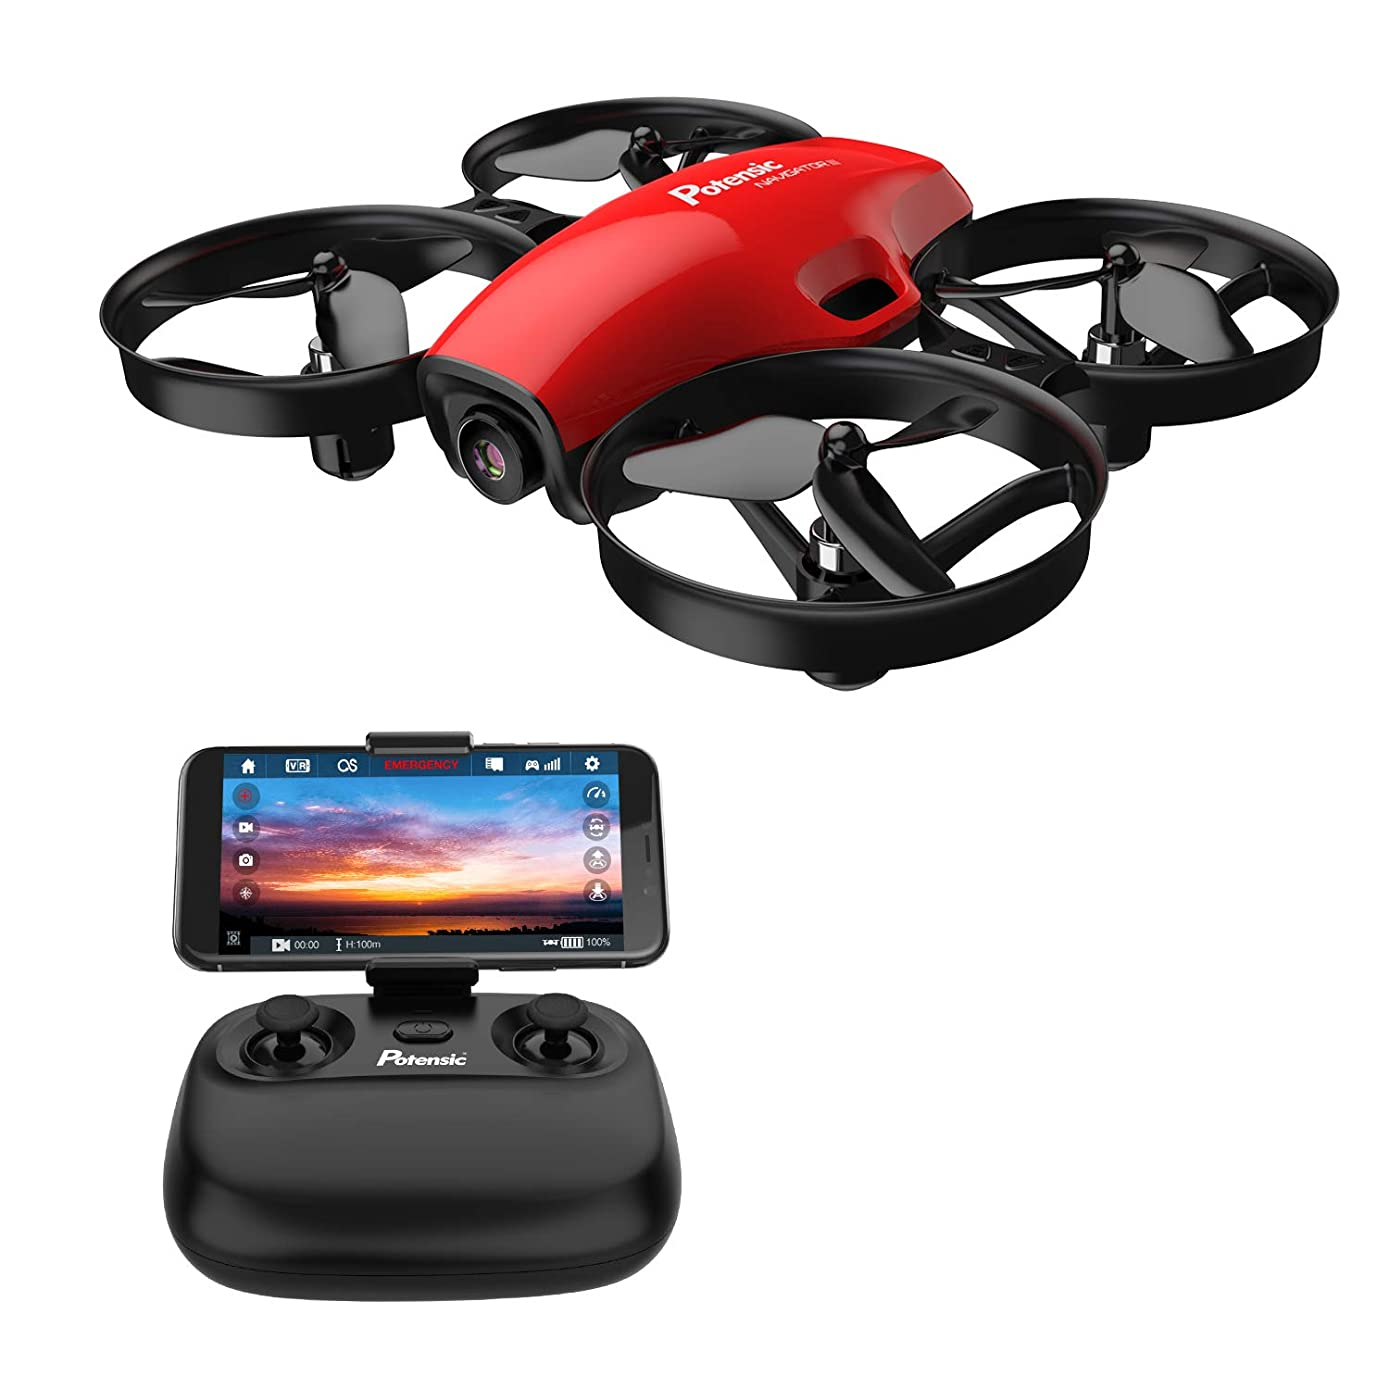 Potensic FPV Drone with Camera WiFi, RC Quadcopter 2.4G 6 Axis-Remote Control with Altitude Hold, Headless, Route Setting, Speed Mode, One-Key Take-Off/Landing,Detachable Battery A30W -Red